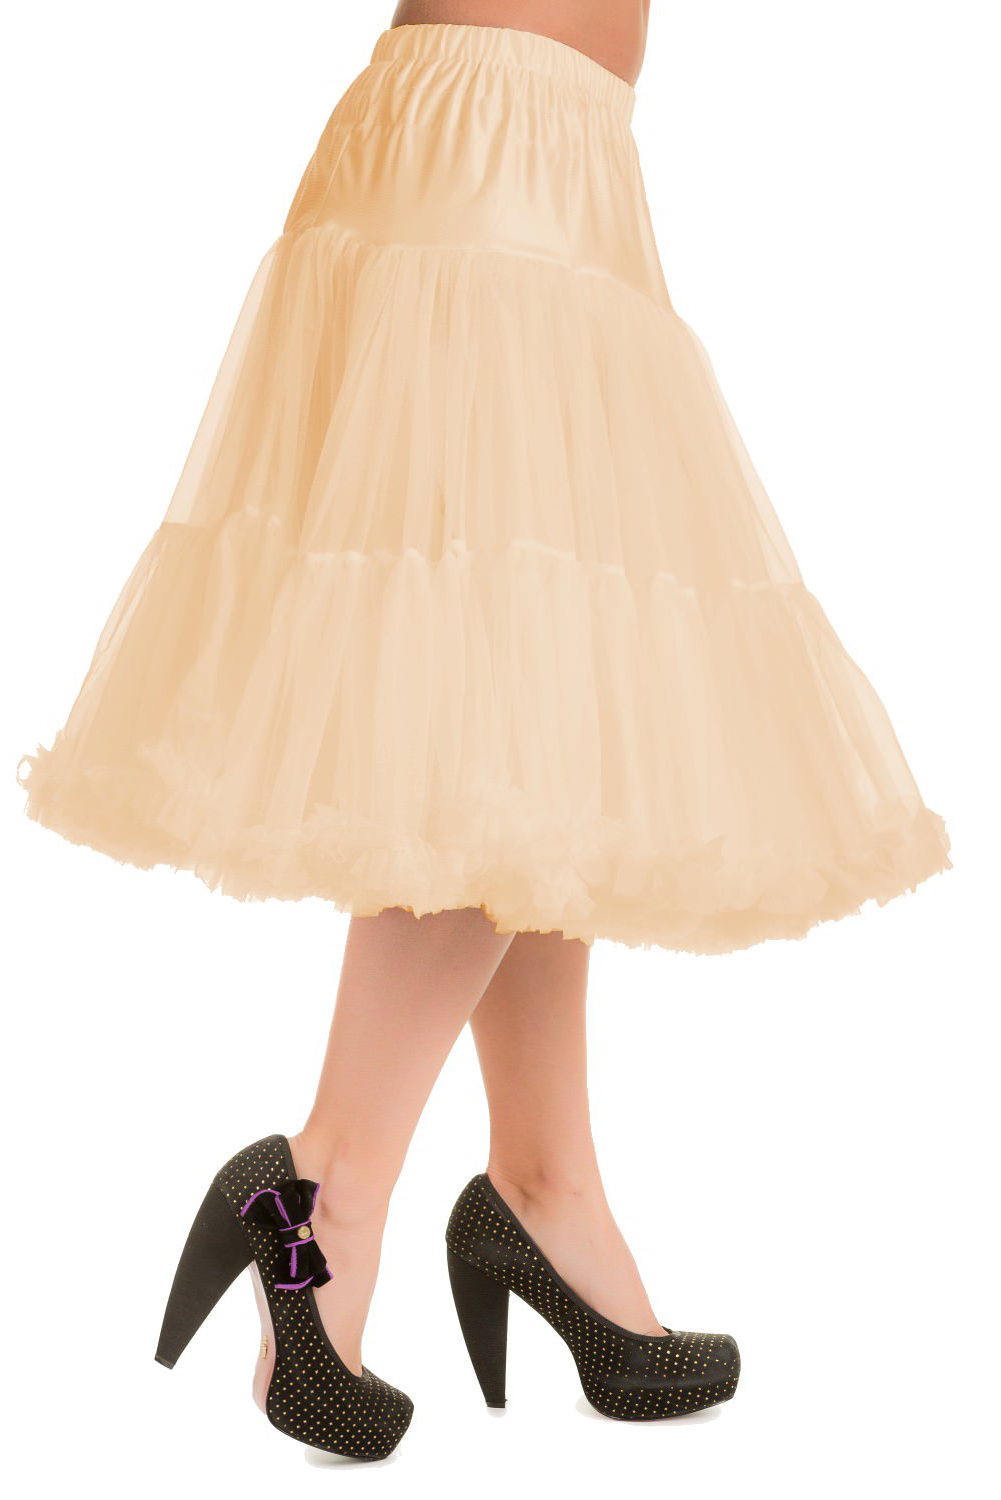 Banned Retro 50s Lizzy Lifeforms Champagne Petticoat